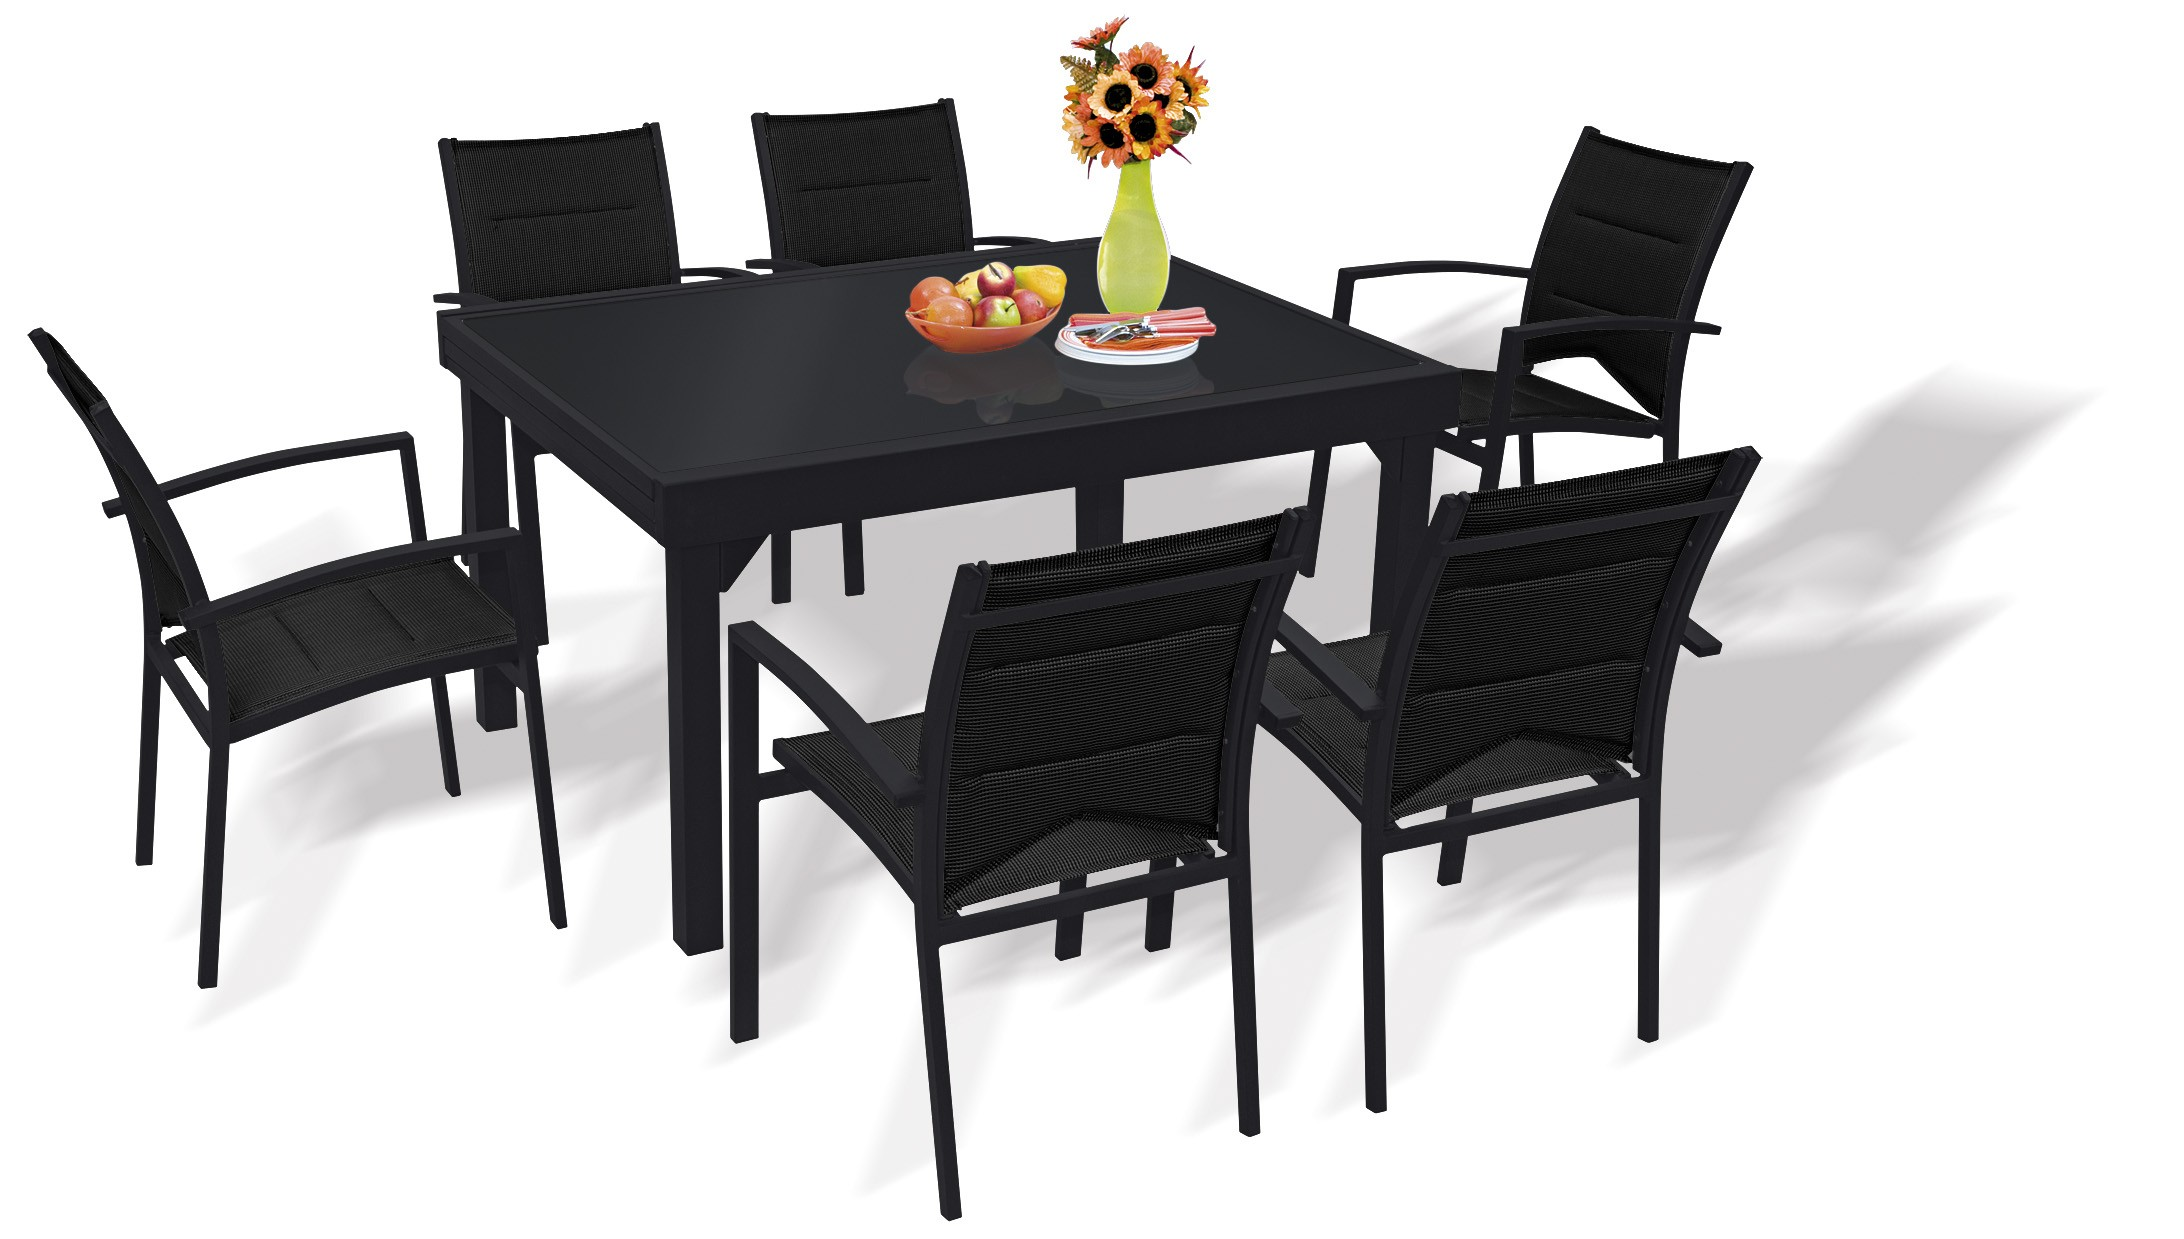 wilsa ensemble repas pour 12 personnes en aluminium et. Black Bedroom Furniture Sets. Home Design Ideas